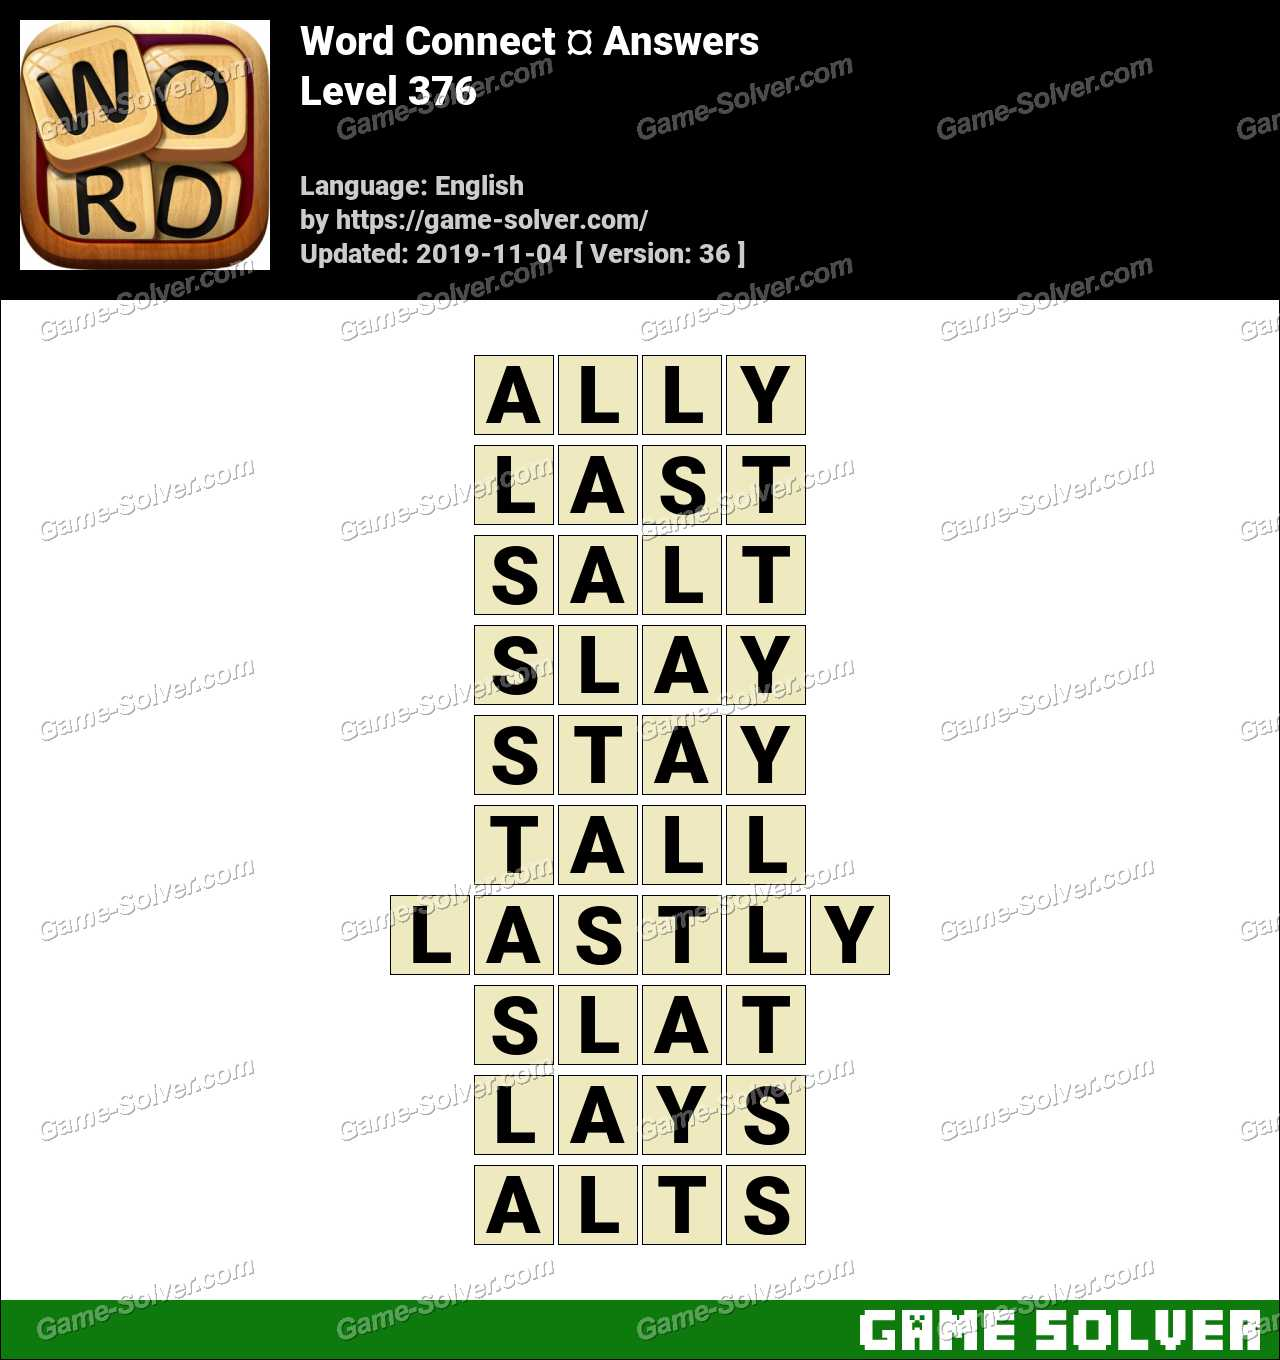 Word Connect Level 376 Answers